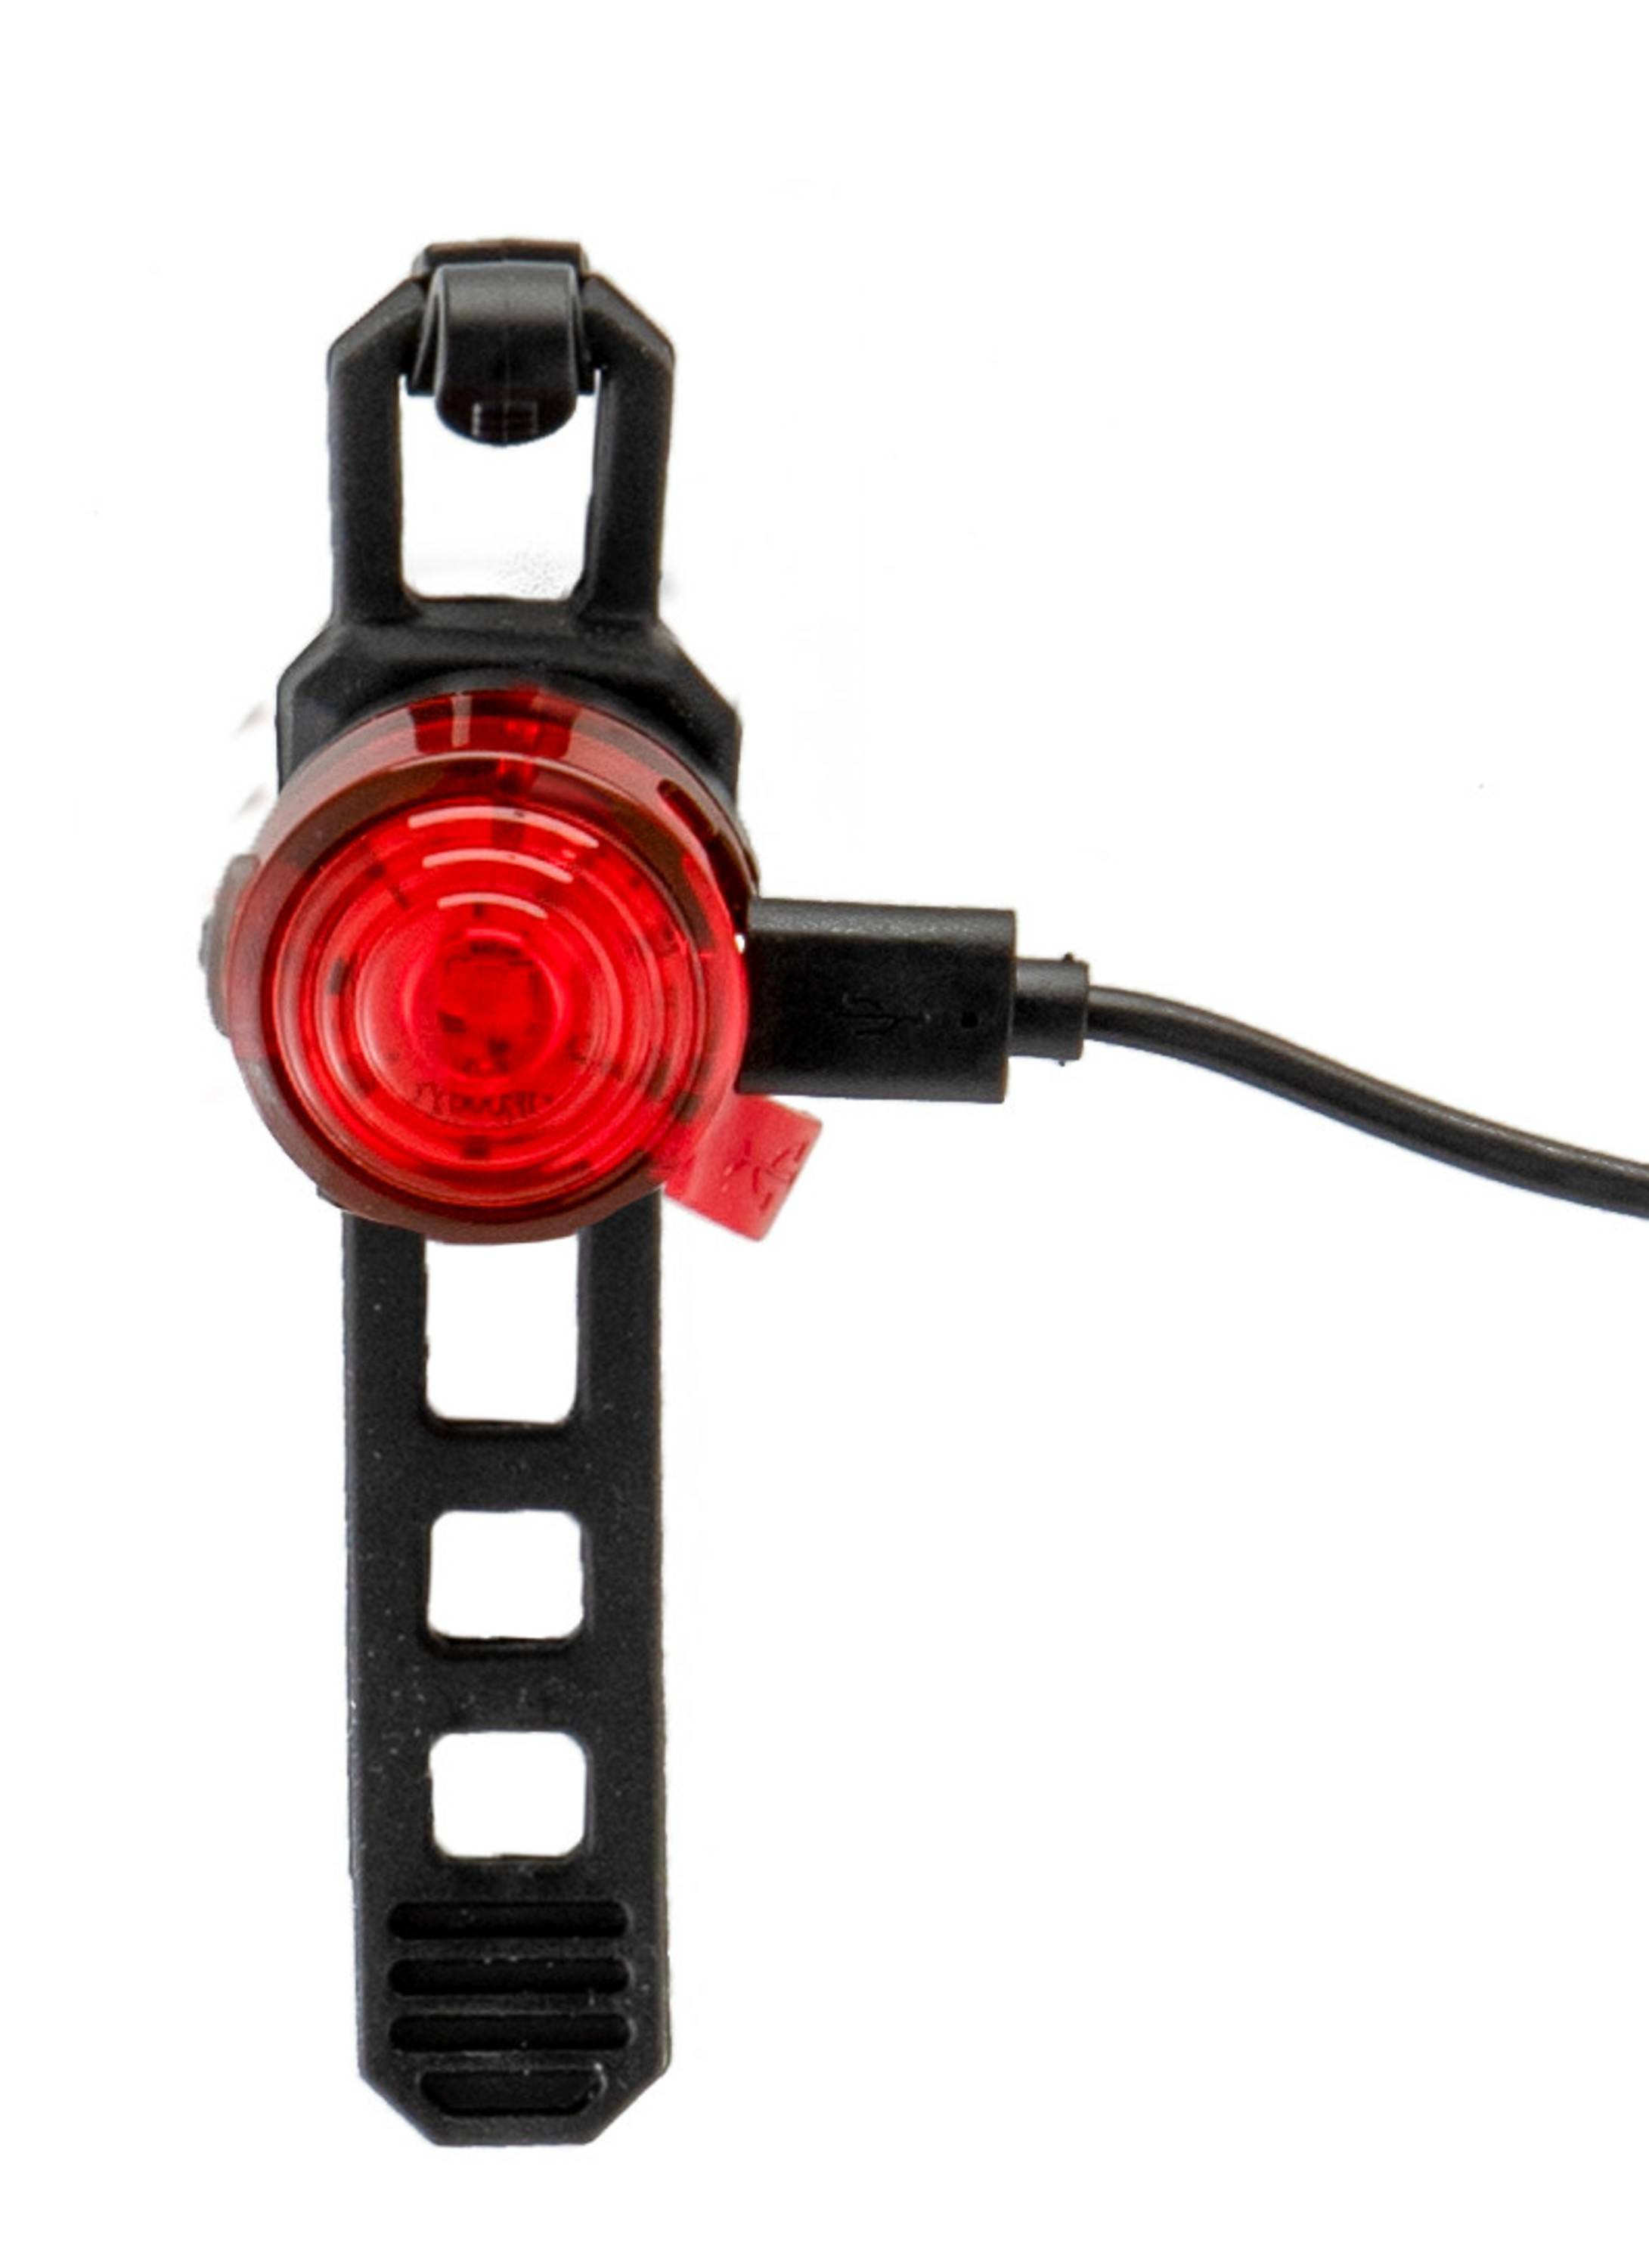 24 LED BIKE LIGHT KIT FRONT HEADLIGHT AND RED REAR BICYCLE TAILLIGHTS BULK LOT